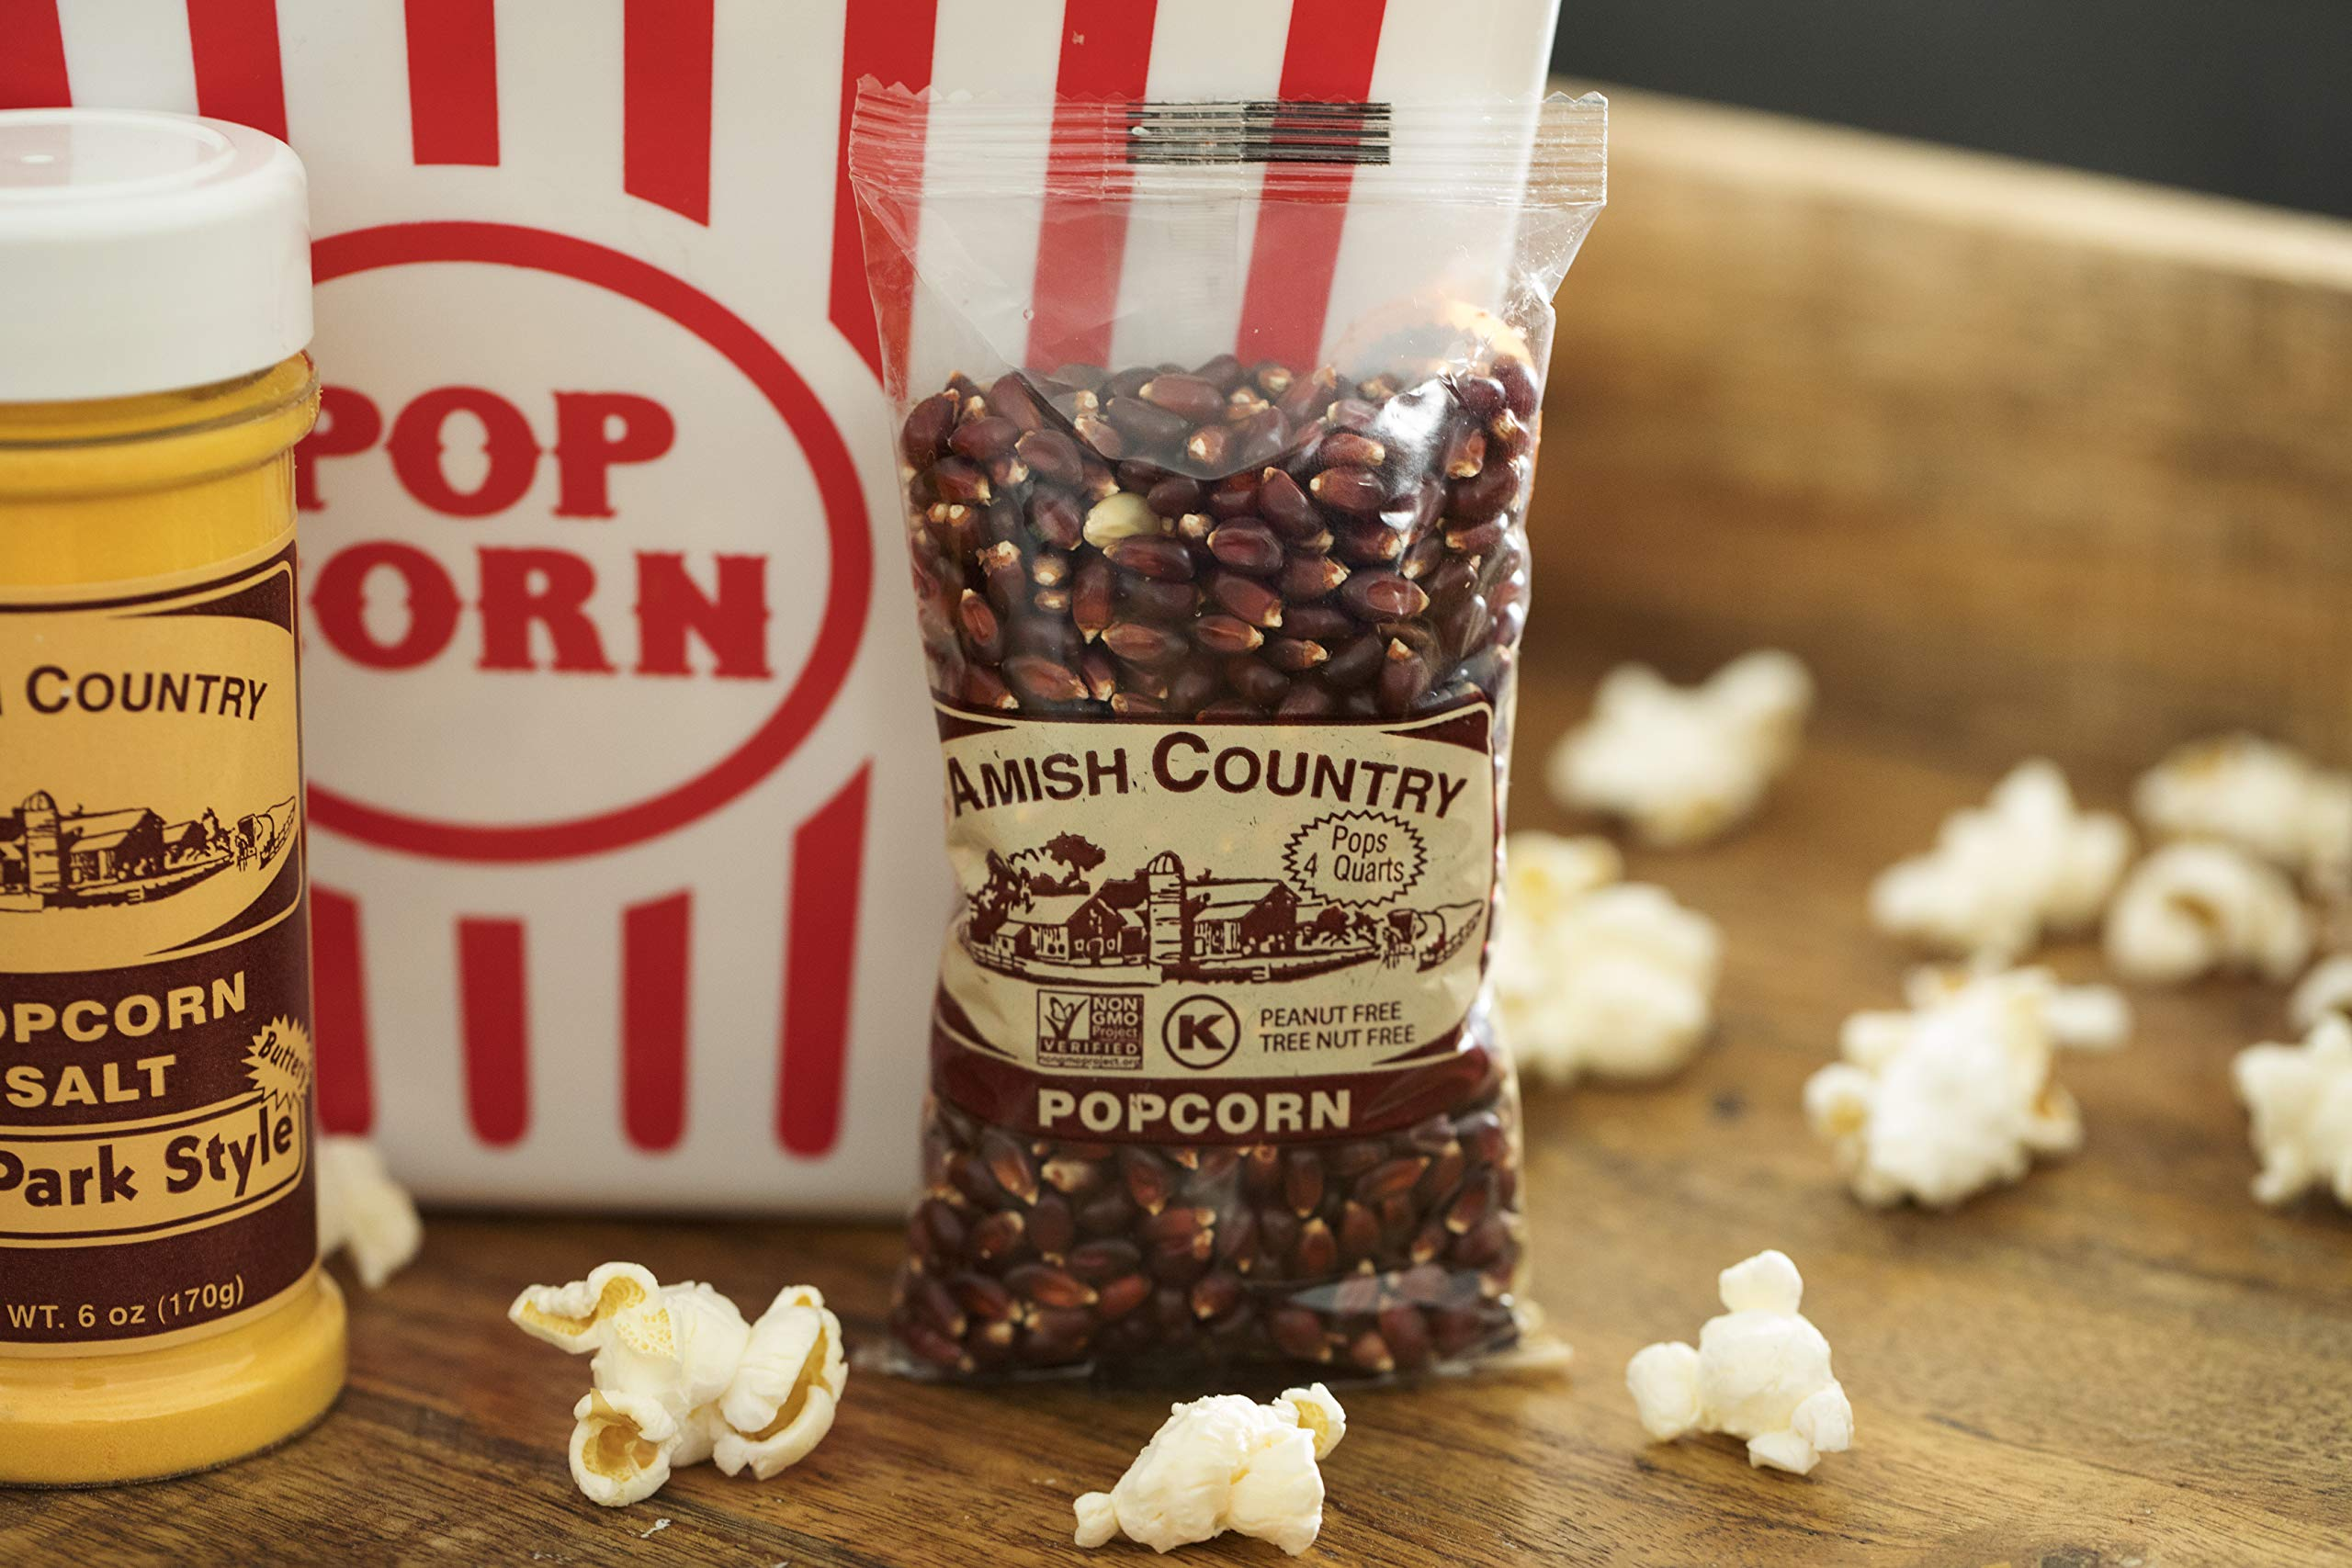 Amish Country Popcorn - Red Popcorn (4 Ounce - 24 Pack) - Old Fashioned, Non GMO, and Gluten Free - with Recipe Guide by Amish Country Popcorn (Image #4)